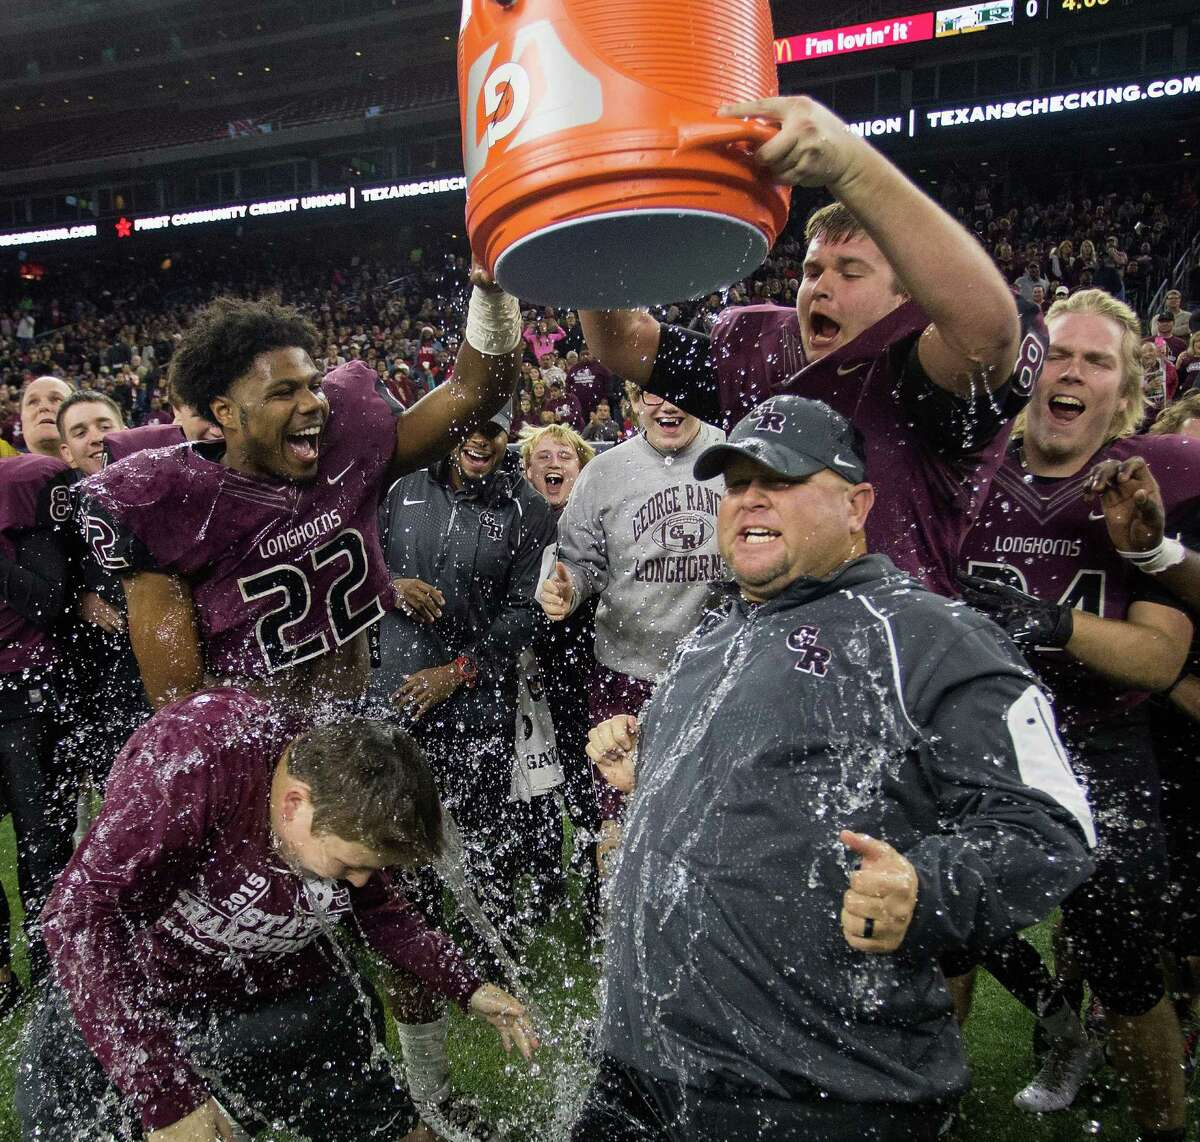 As seems to be the case every two years, an area 5A (old 4A) football powerhouse or two makes the jump to the state's largest classification after dominating at the second-highest class. In 2014, it was Dawson, Friendswood and Montgomery, which were a combined 28-9 the year before. In 2012, it was Manvel, which played in a state final the previous fall. This time around it's a state champion (George Ranch) and a semifinalist (Ridge Point) among others. And with basketball included, Class 6A welcomes back the current No. 1 boys basketball team in Bush. Ridge Point and Bush should join in with six other 6A Fort Bend ISD schools. George Ranch's destination isn't as clear. With the remaining Lamar Consolidated schools still in 5A, George Ranch may go north and join the seven Katy ISD schools or east to Fort Bend.